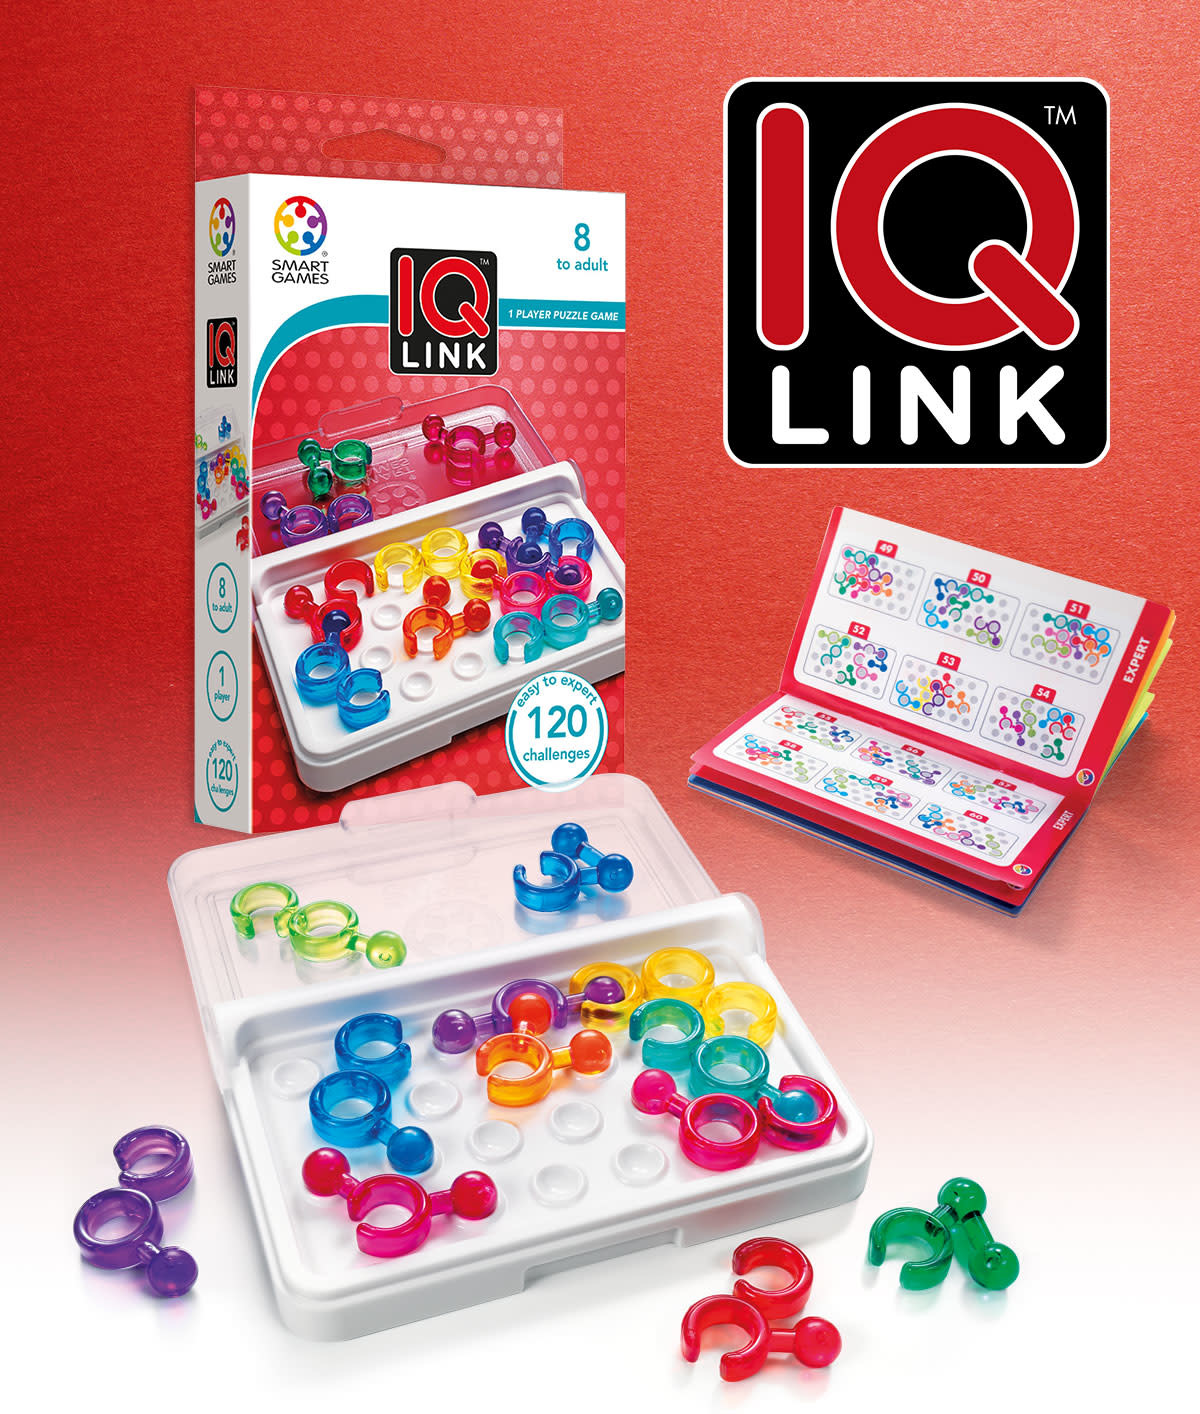 IQ Link by Smart Games